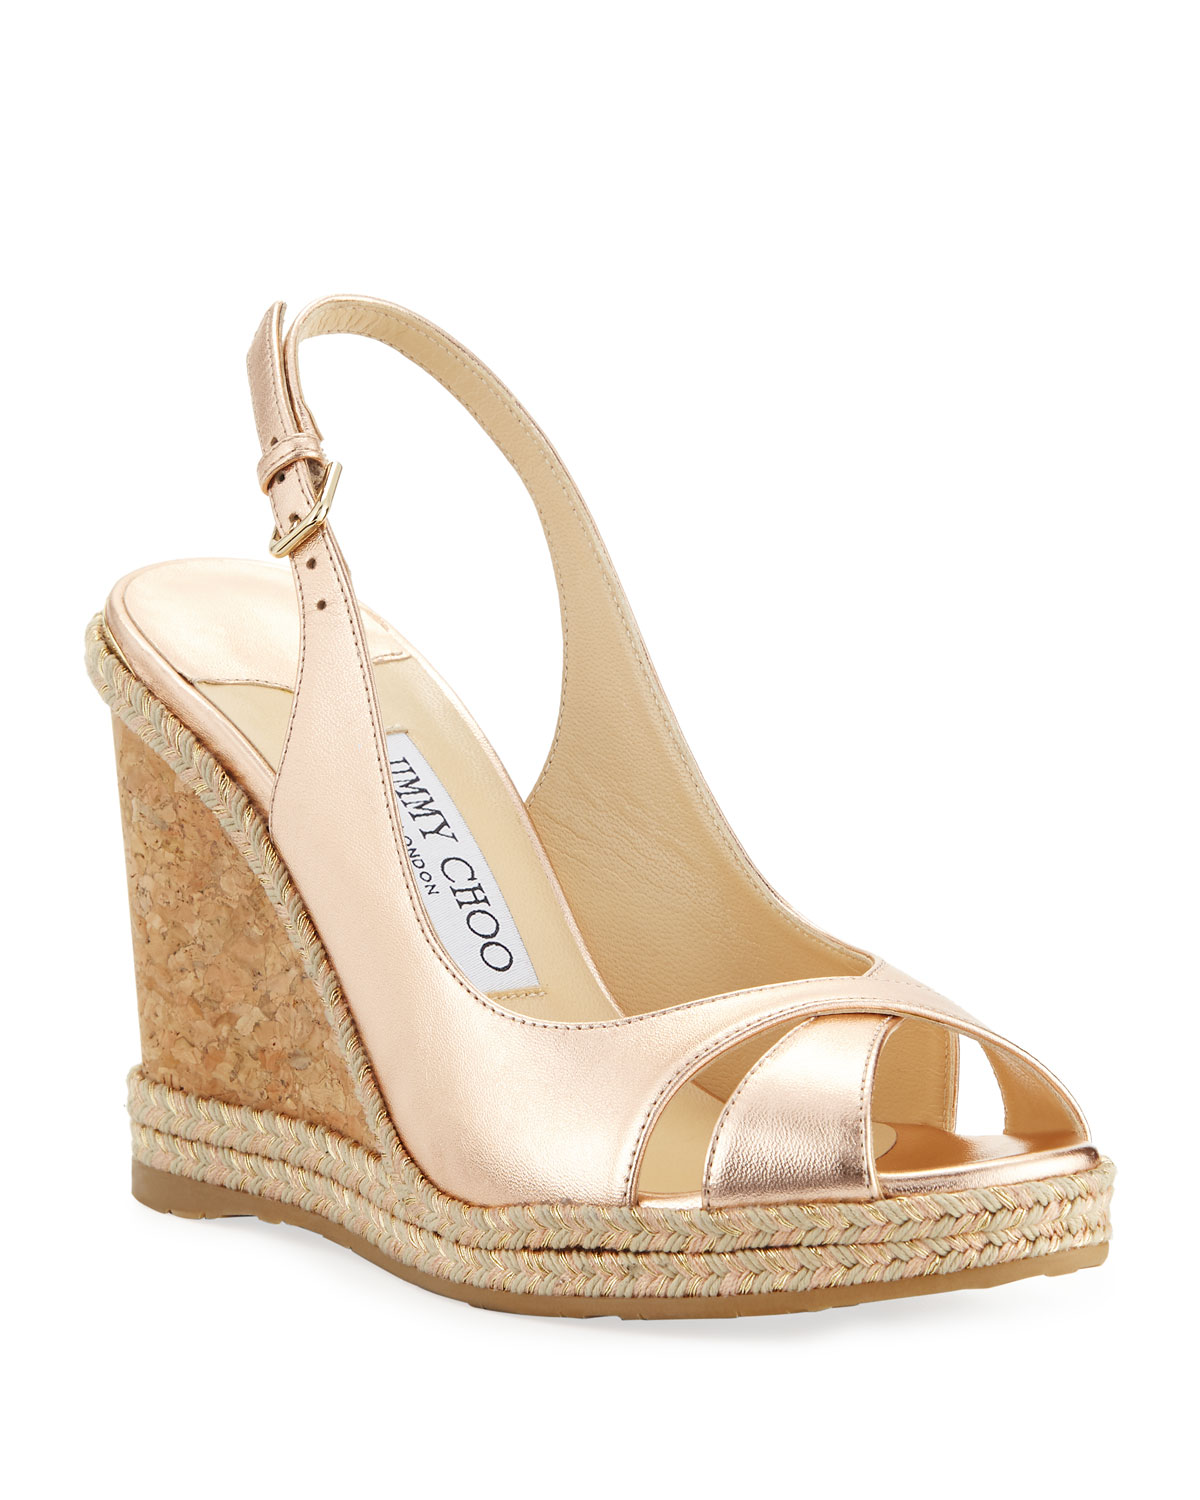 Amely 105mm Metallic Leather Cork Wedge Sandals